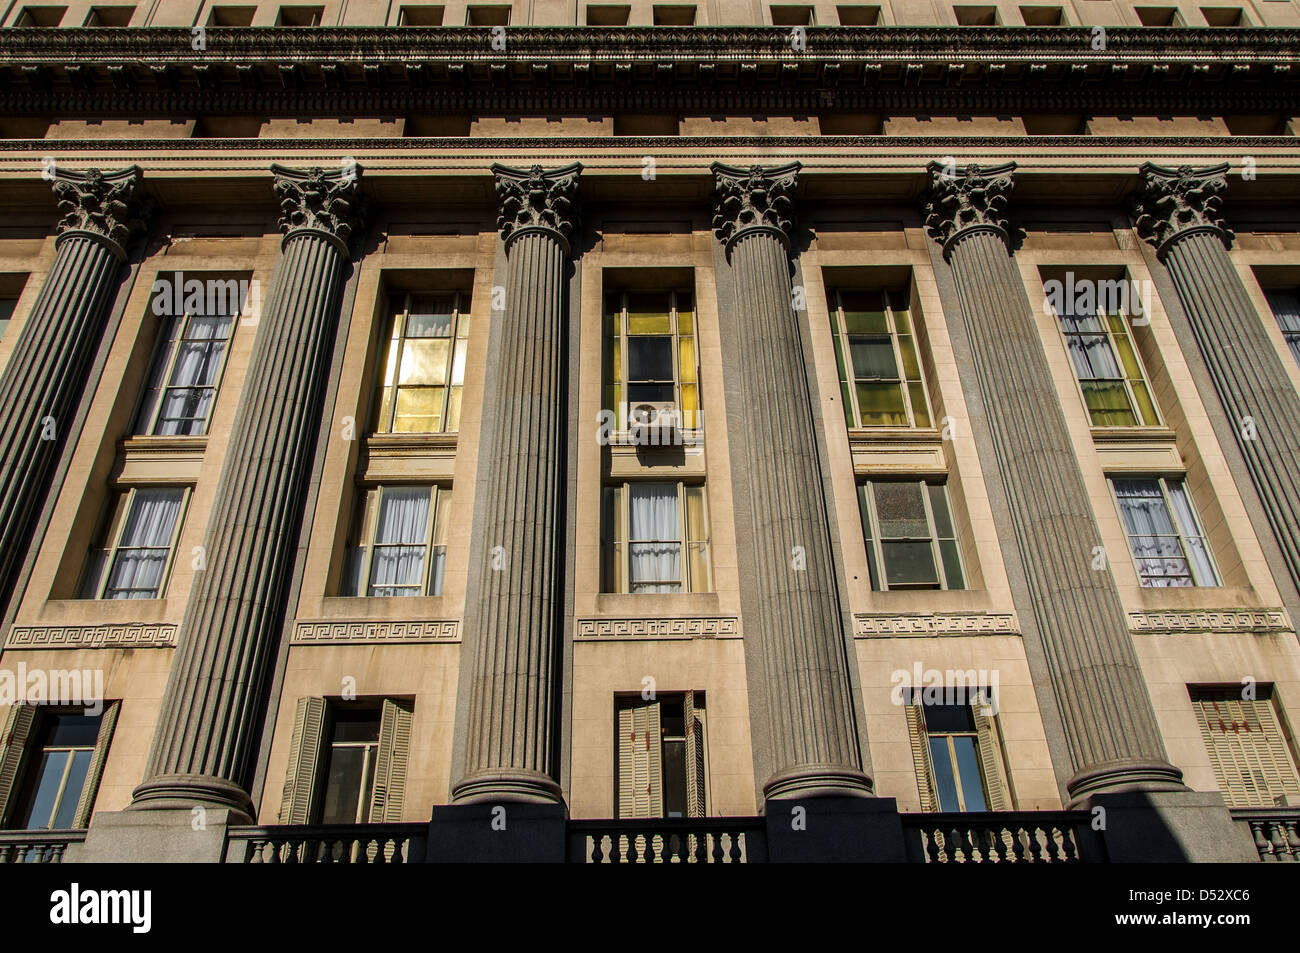 Roman style columns on a building in Montevideo - Stock Image